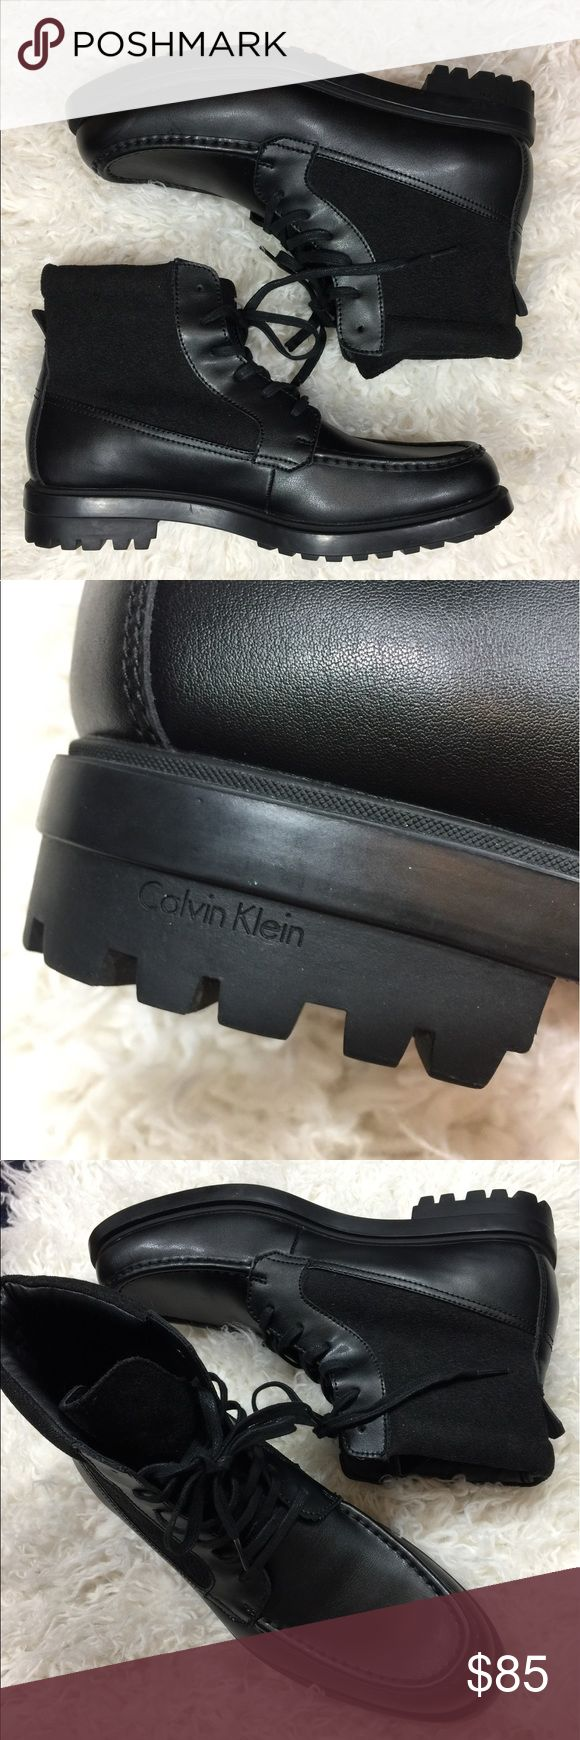 Calvin Klein moto men's leather boots Brand new no box. Calvin Klein ankle high boots. Size 10.5 lace up Calvin Klein Shoes Boots